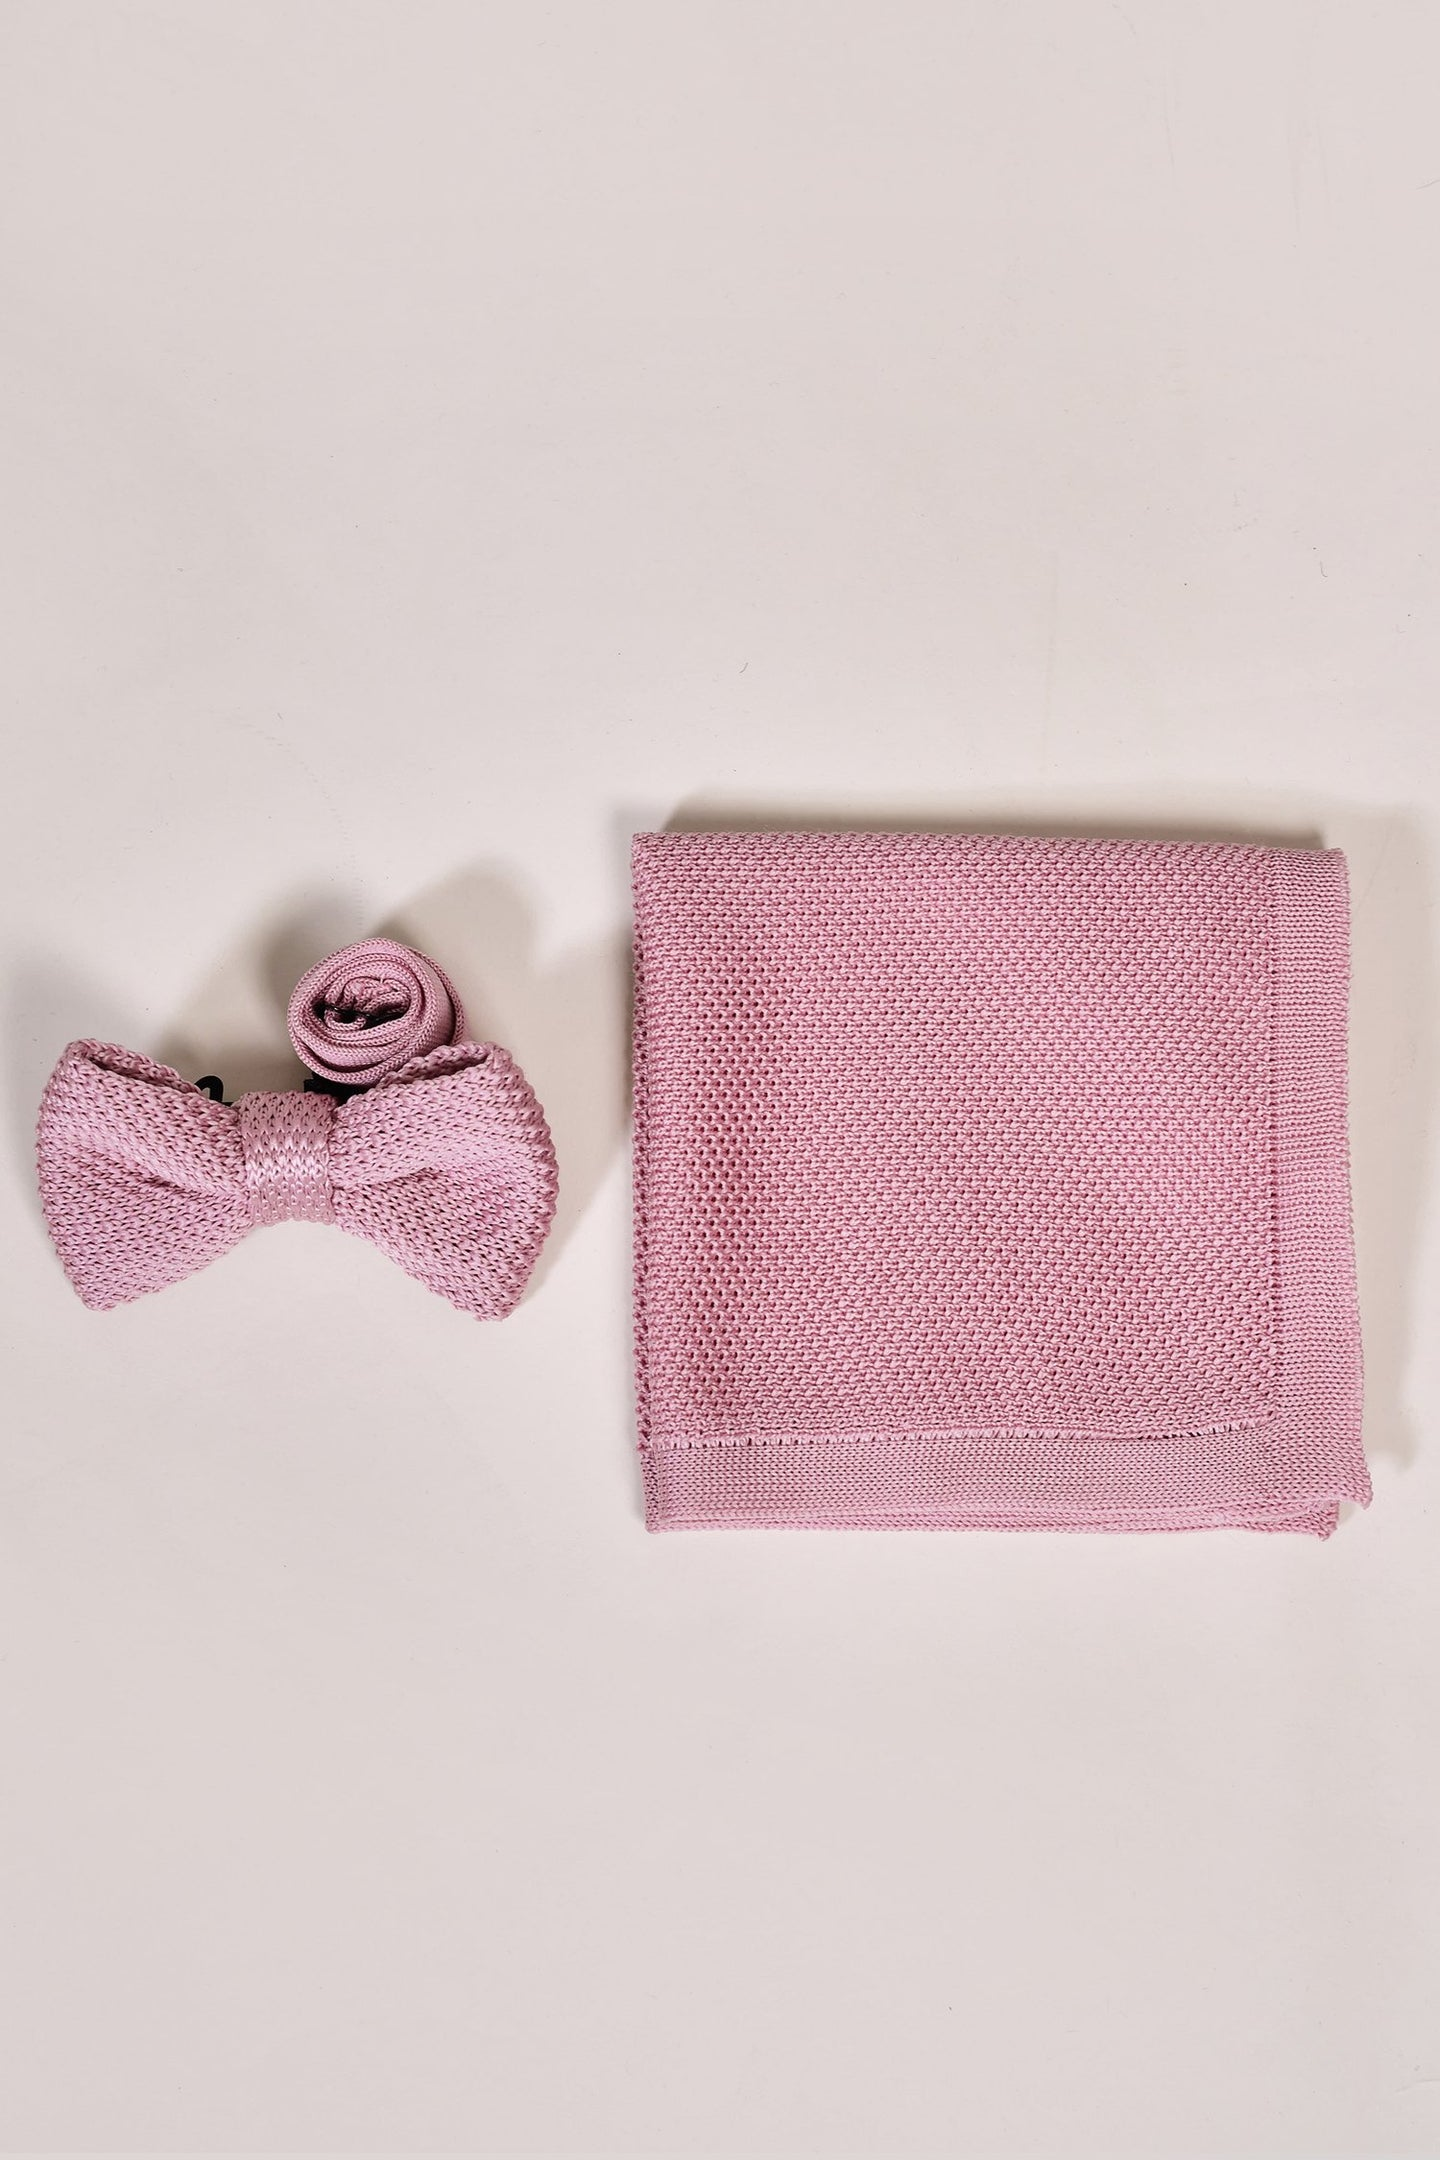 Broni&Bo Children's Dusty Pink Knitted Bow Tie & Pocket Square Set